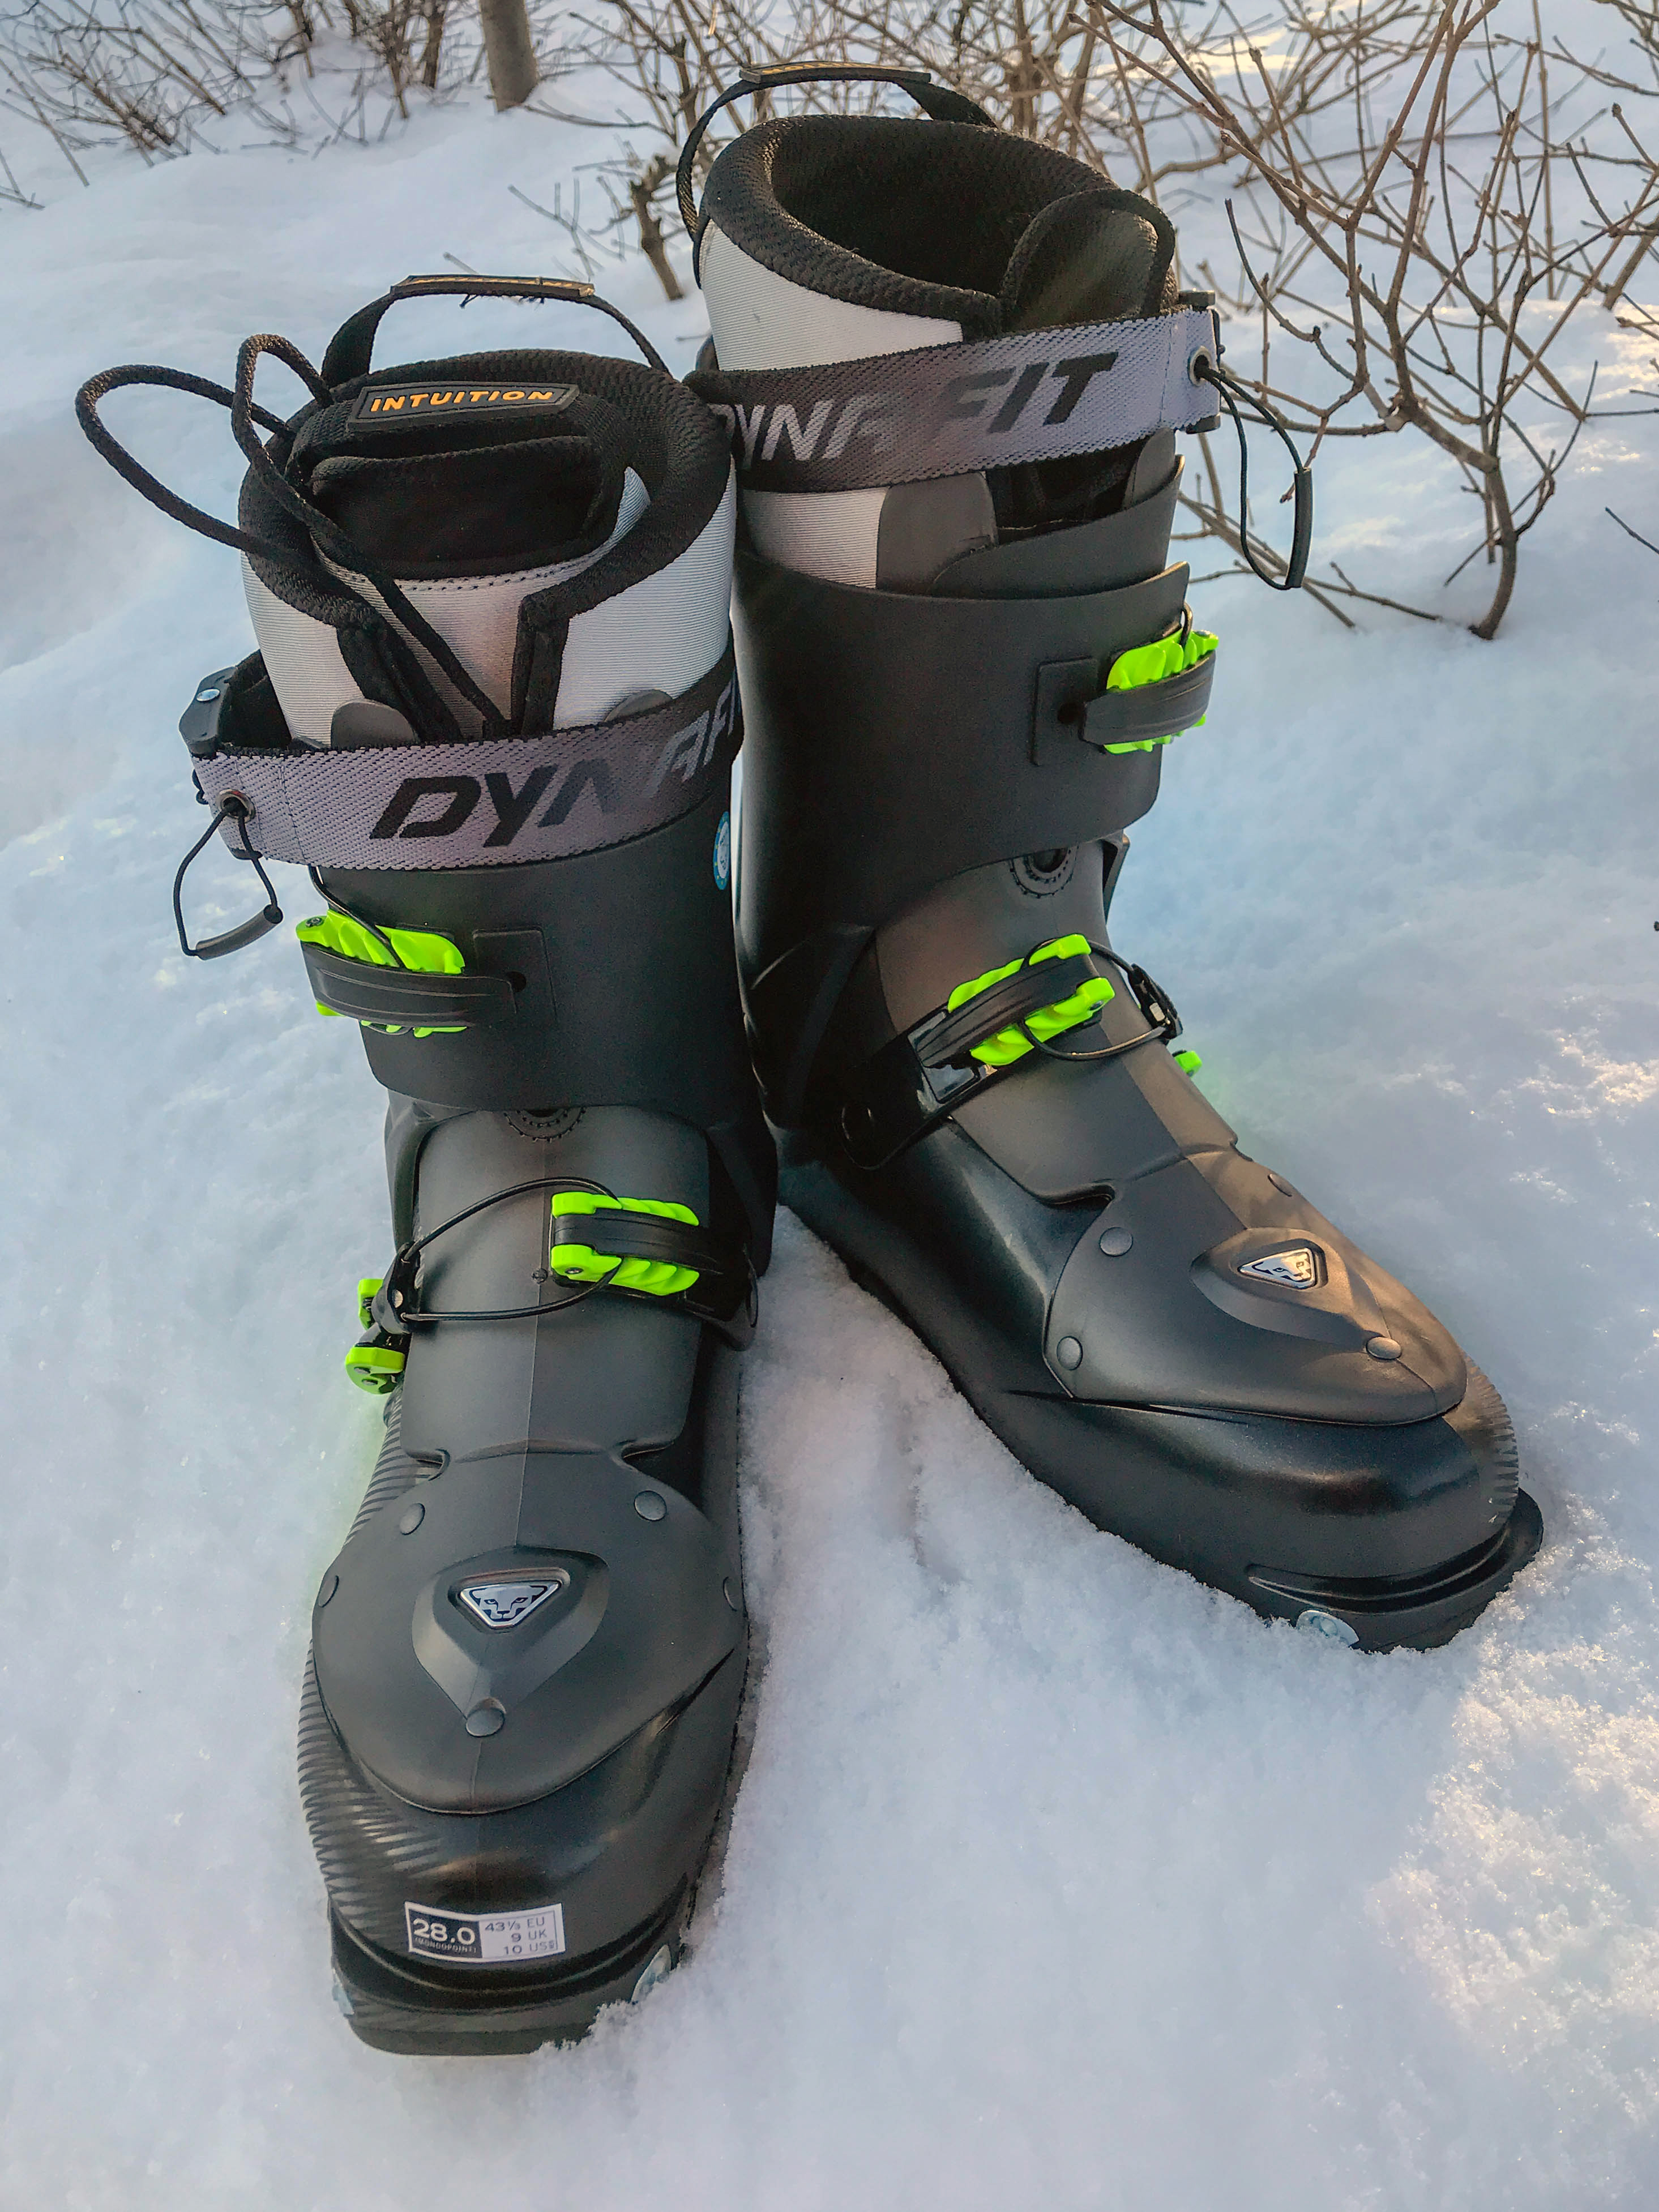 2c82b5090d7 Dynafit TLT Speedfit Ski Touring Boot Review: Good for Ice Climbs ...